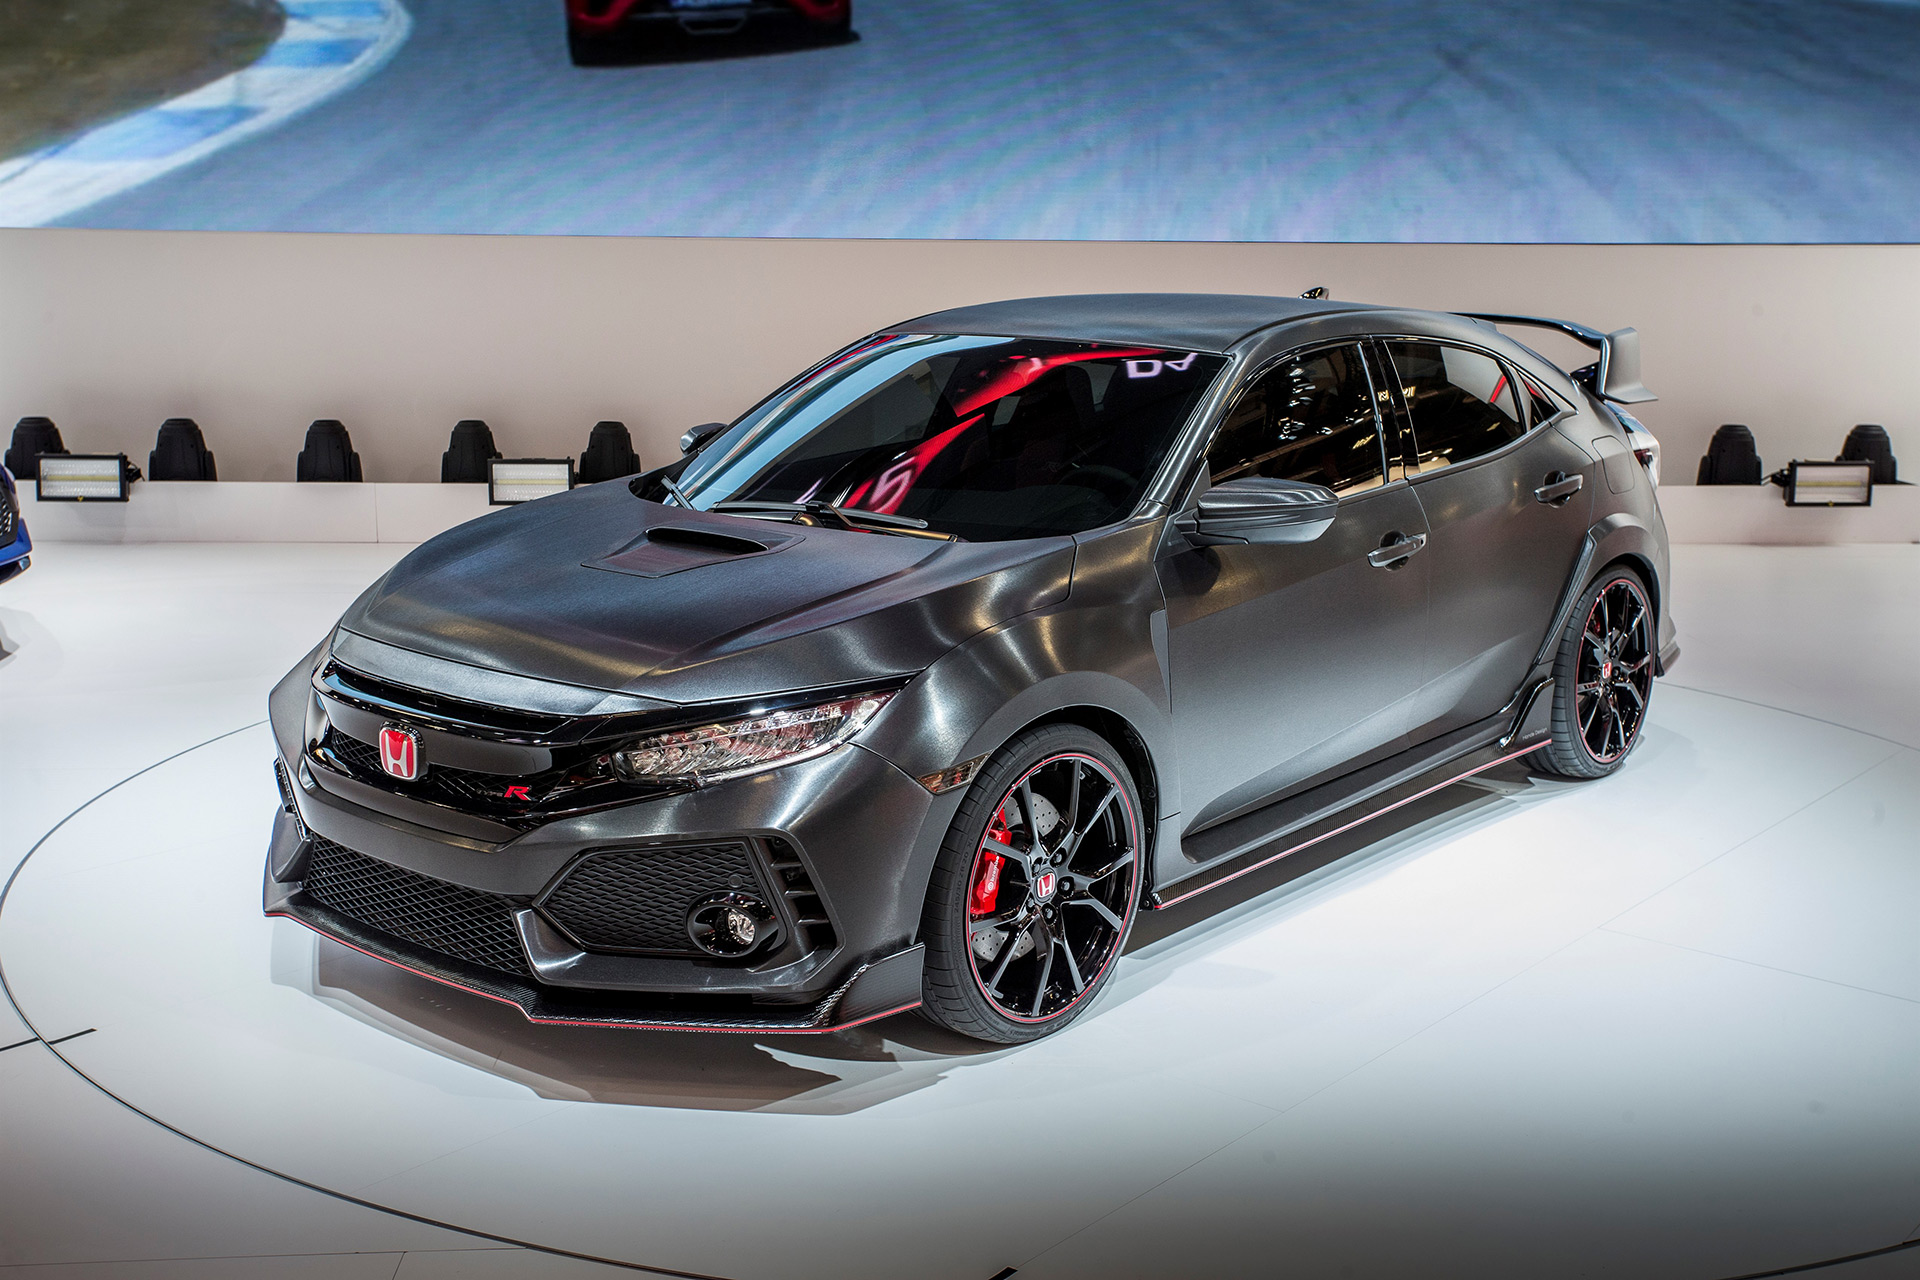 Honda Civic Si Specs New Car Models 2019 2020 1970 2017 Type R Prototype Hd Photo Gallery